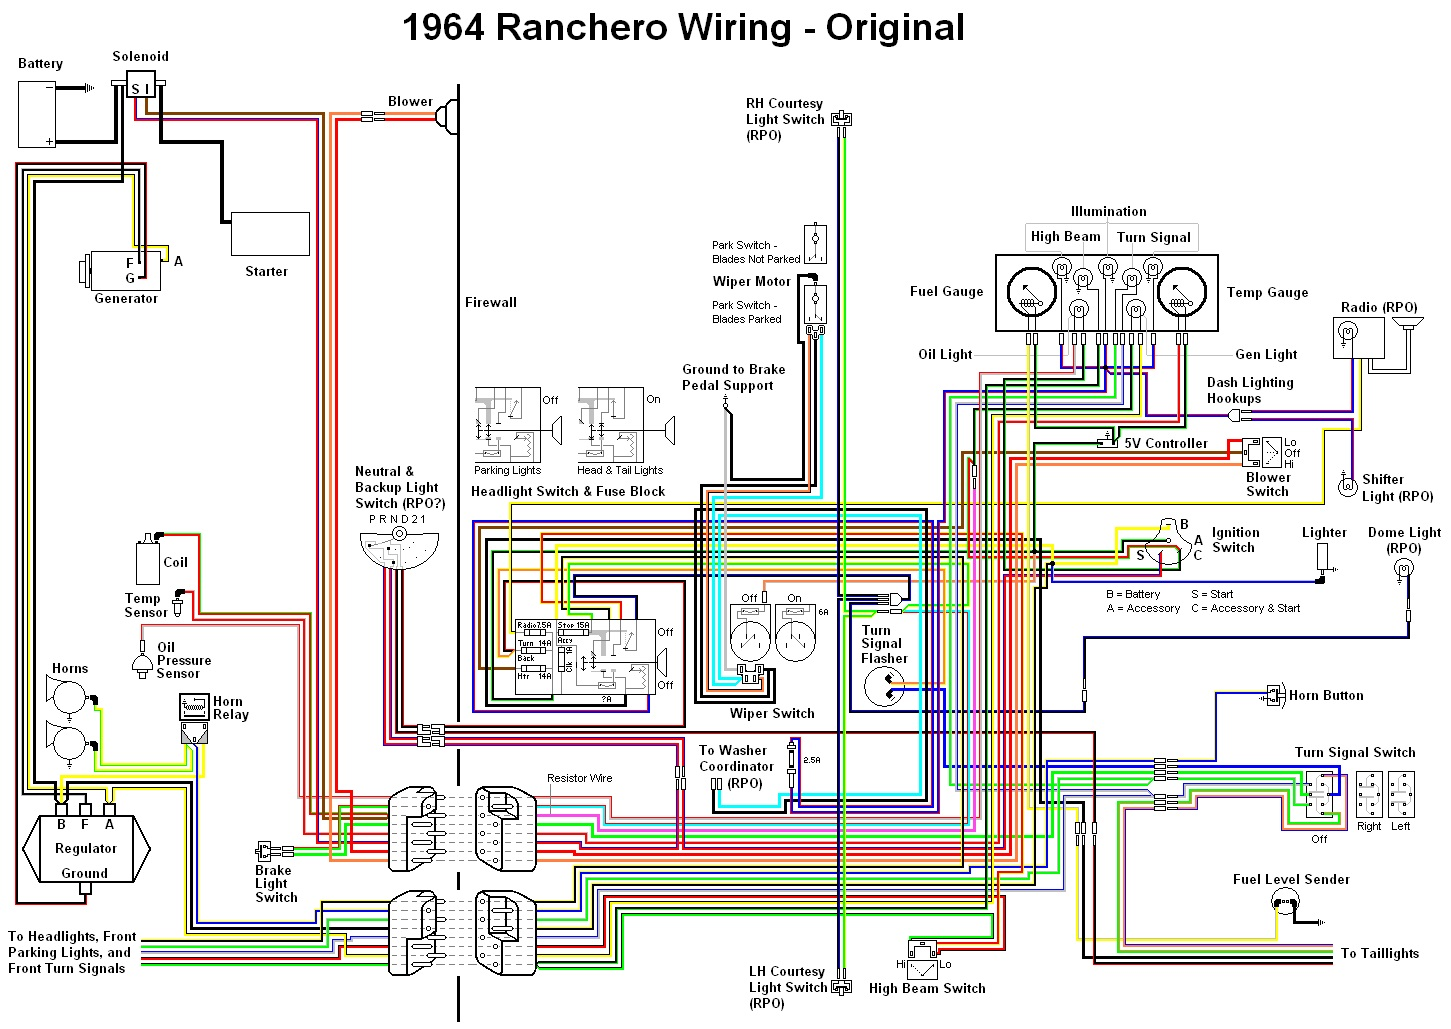 1965 Corvette Wiring Diagram Switch Library 1966 Nova Wiper Schematic 64 Et Layout Diagrams U2022 Rh Laurafinlay Co Uk